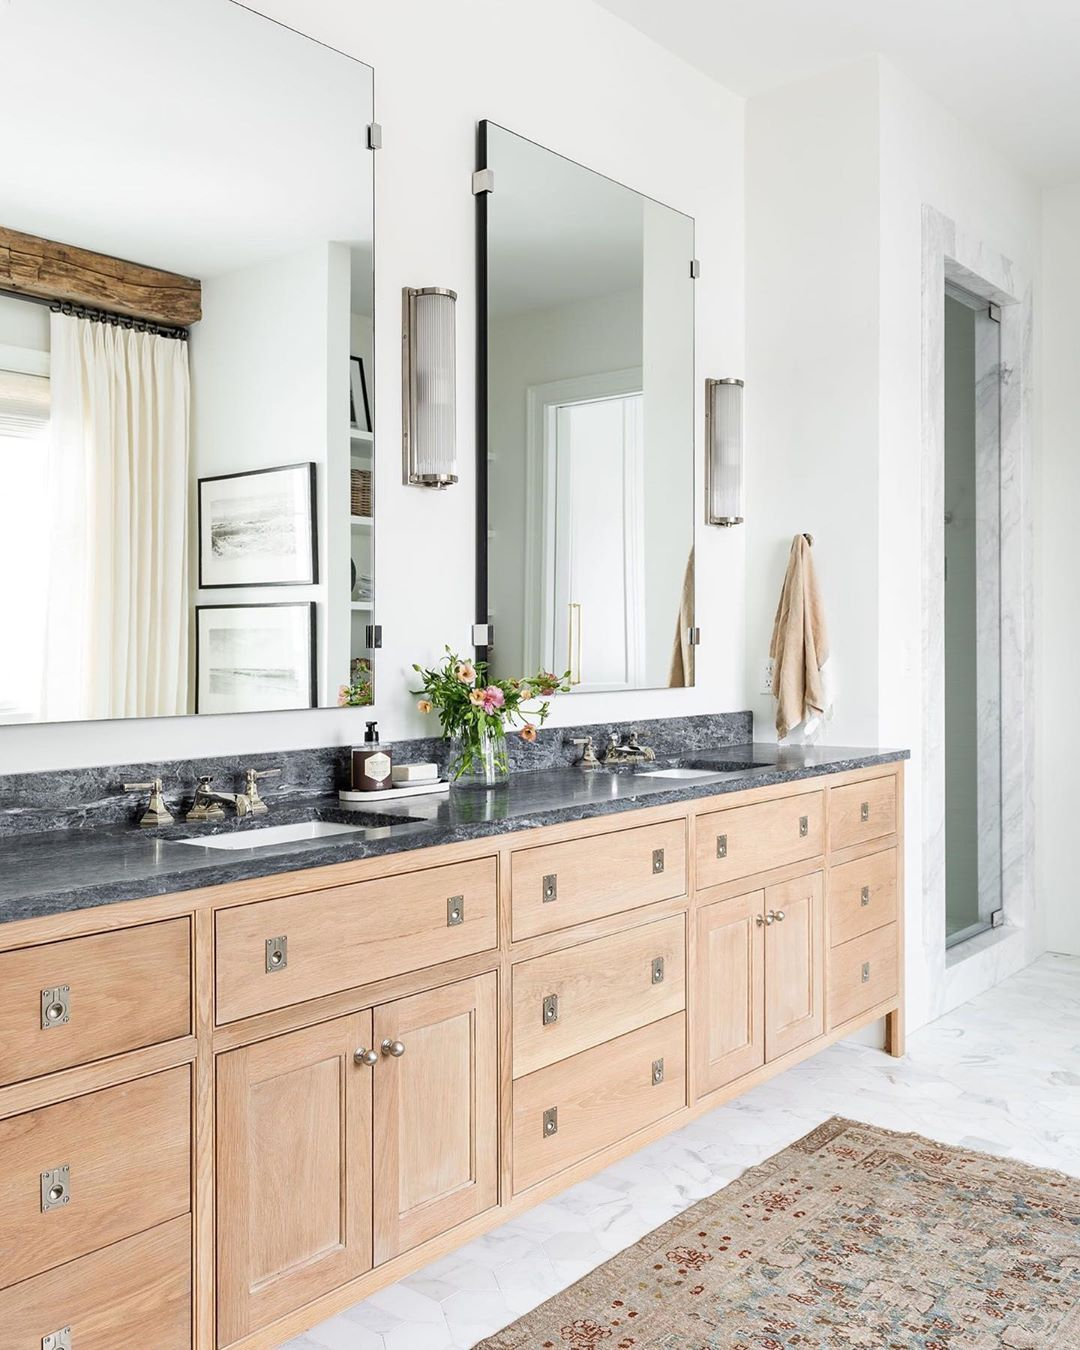 Studio Mcgee S Instagram Profile Post Did You Catch The Tour Of Our Master Bathroom Tomorrow We Ll Share Master Bathroom Vanity Master Bathroom Studio Mcgee